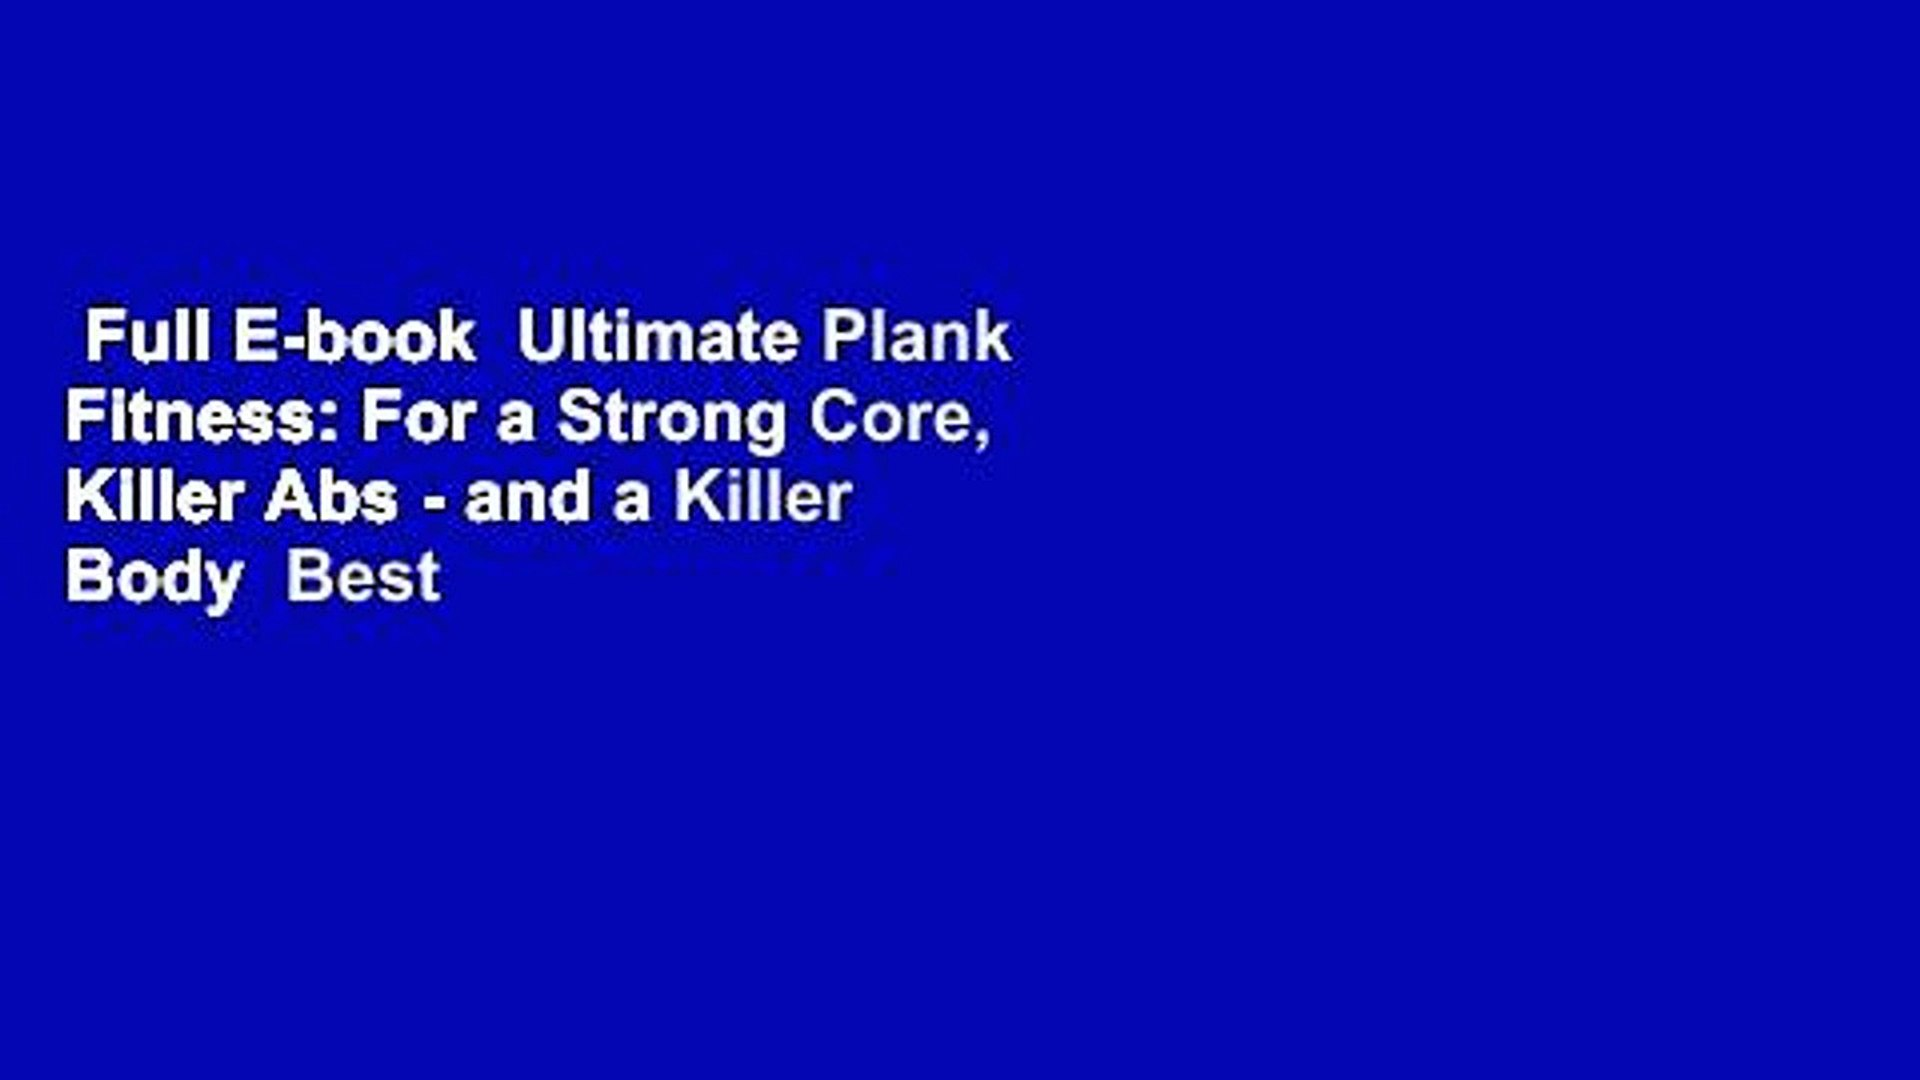 Full E-book  Ultimate Plank Fitness: For a Strong Core, Killer Abs - and a Killer Body  Best